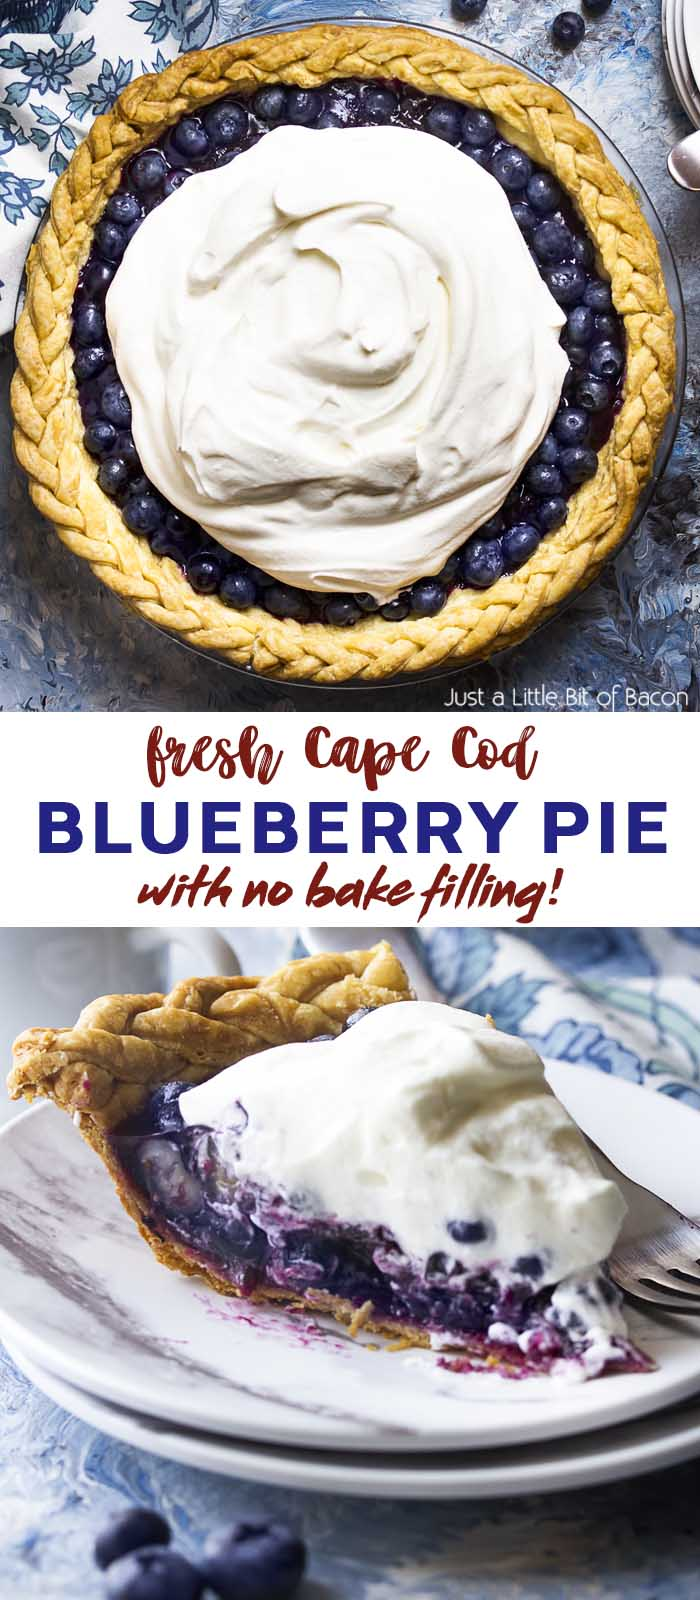 Whole pie and slice of pie on a plate with text overlay - Blueberry Pie.